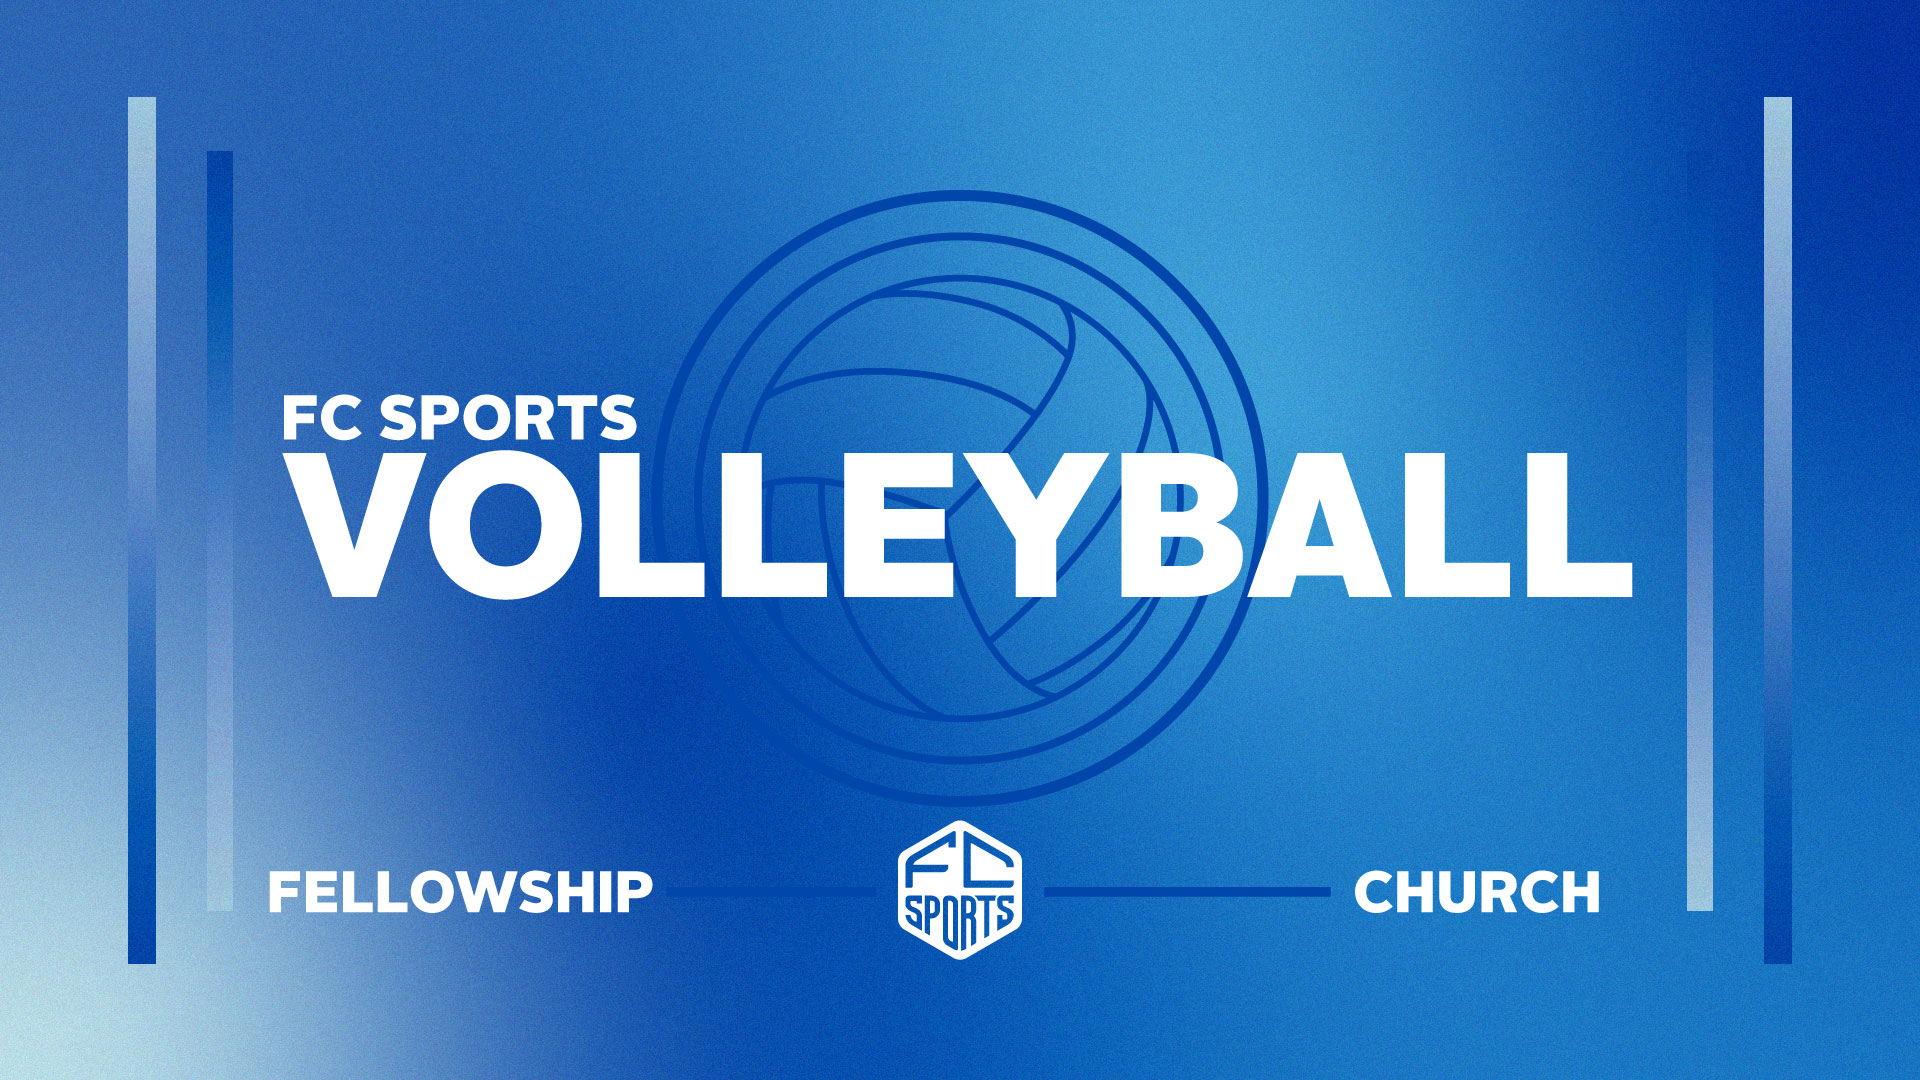 FC Sports Volleyball